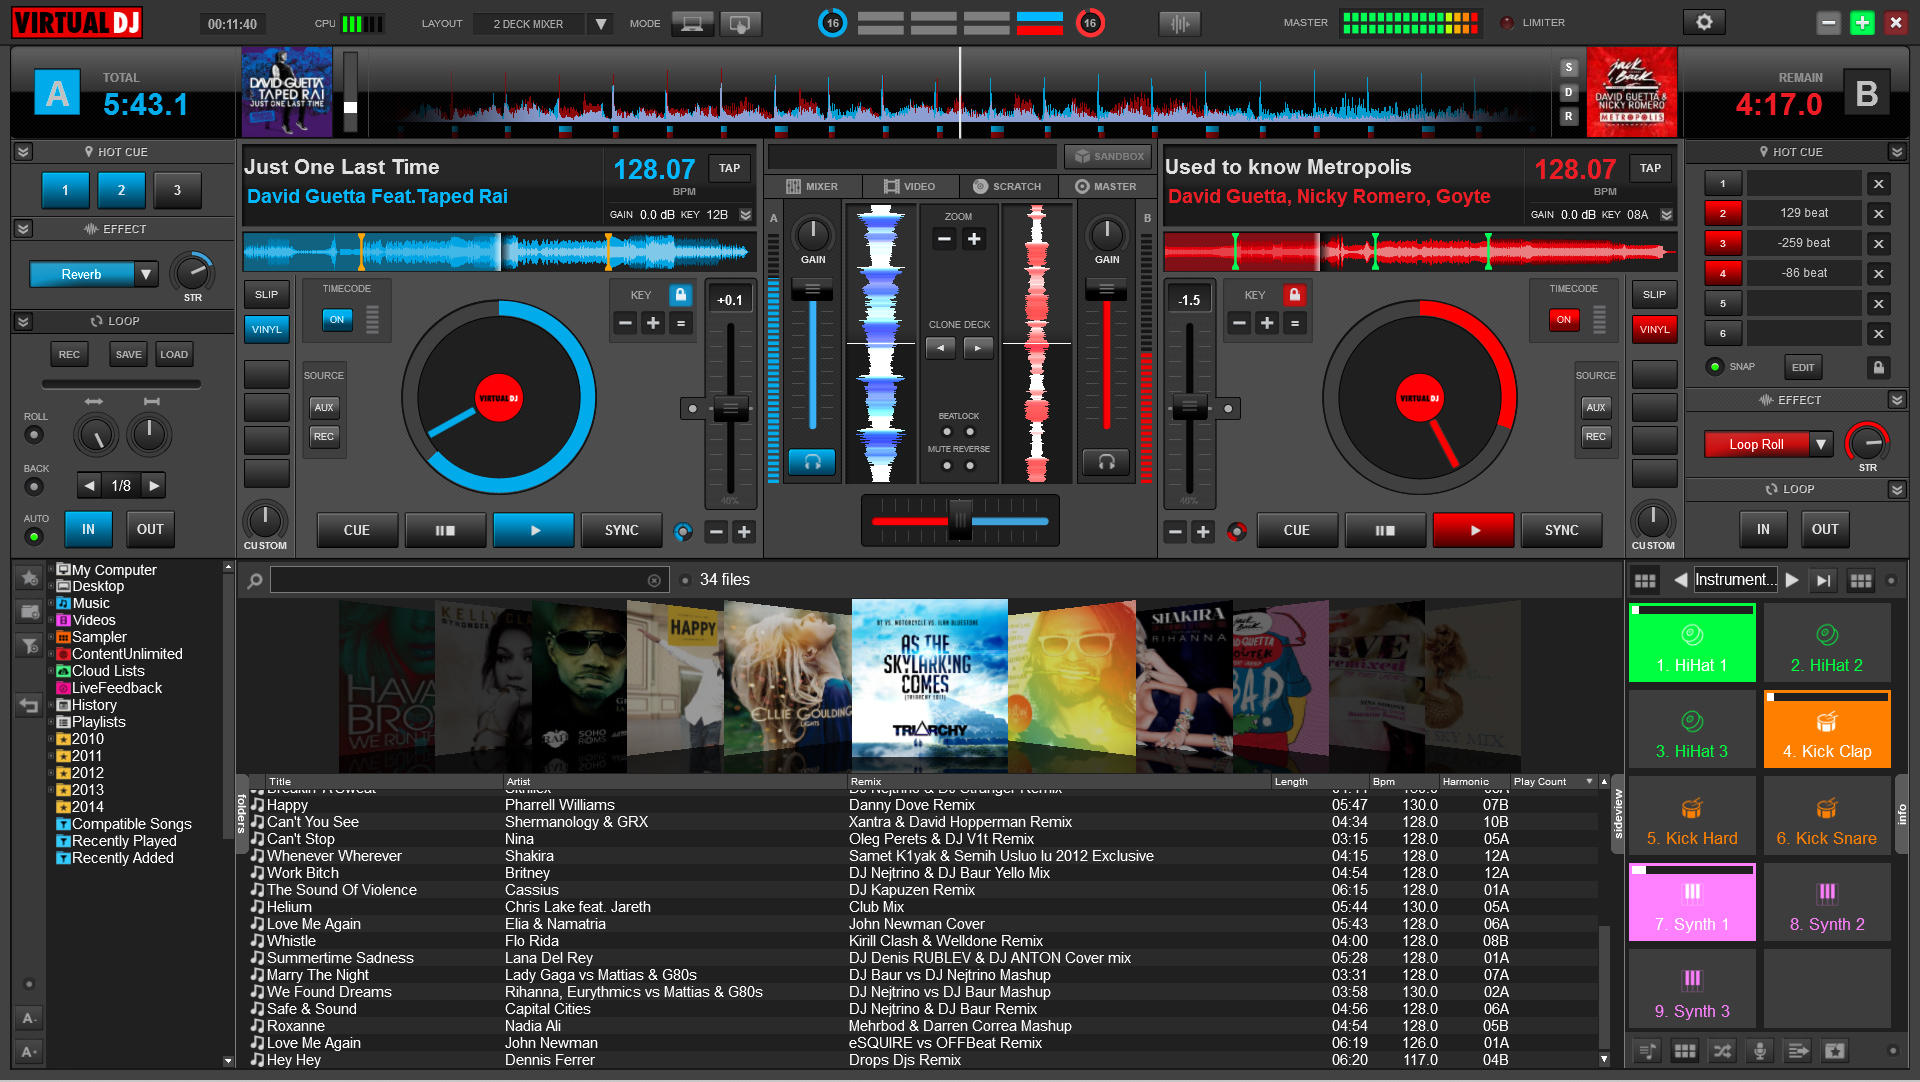 Virtual dj 8 software review digital dj tips.